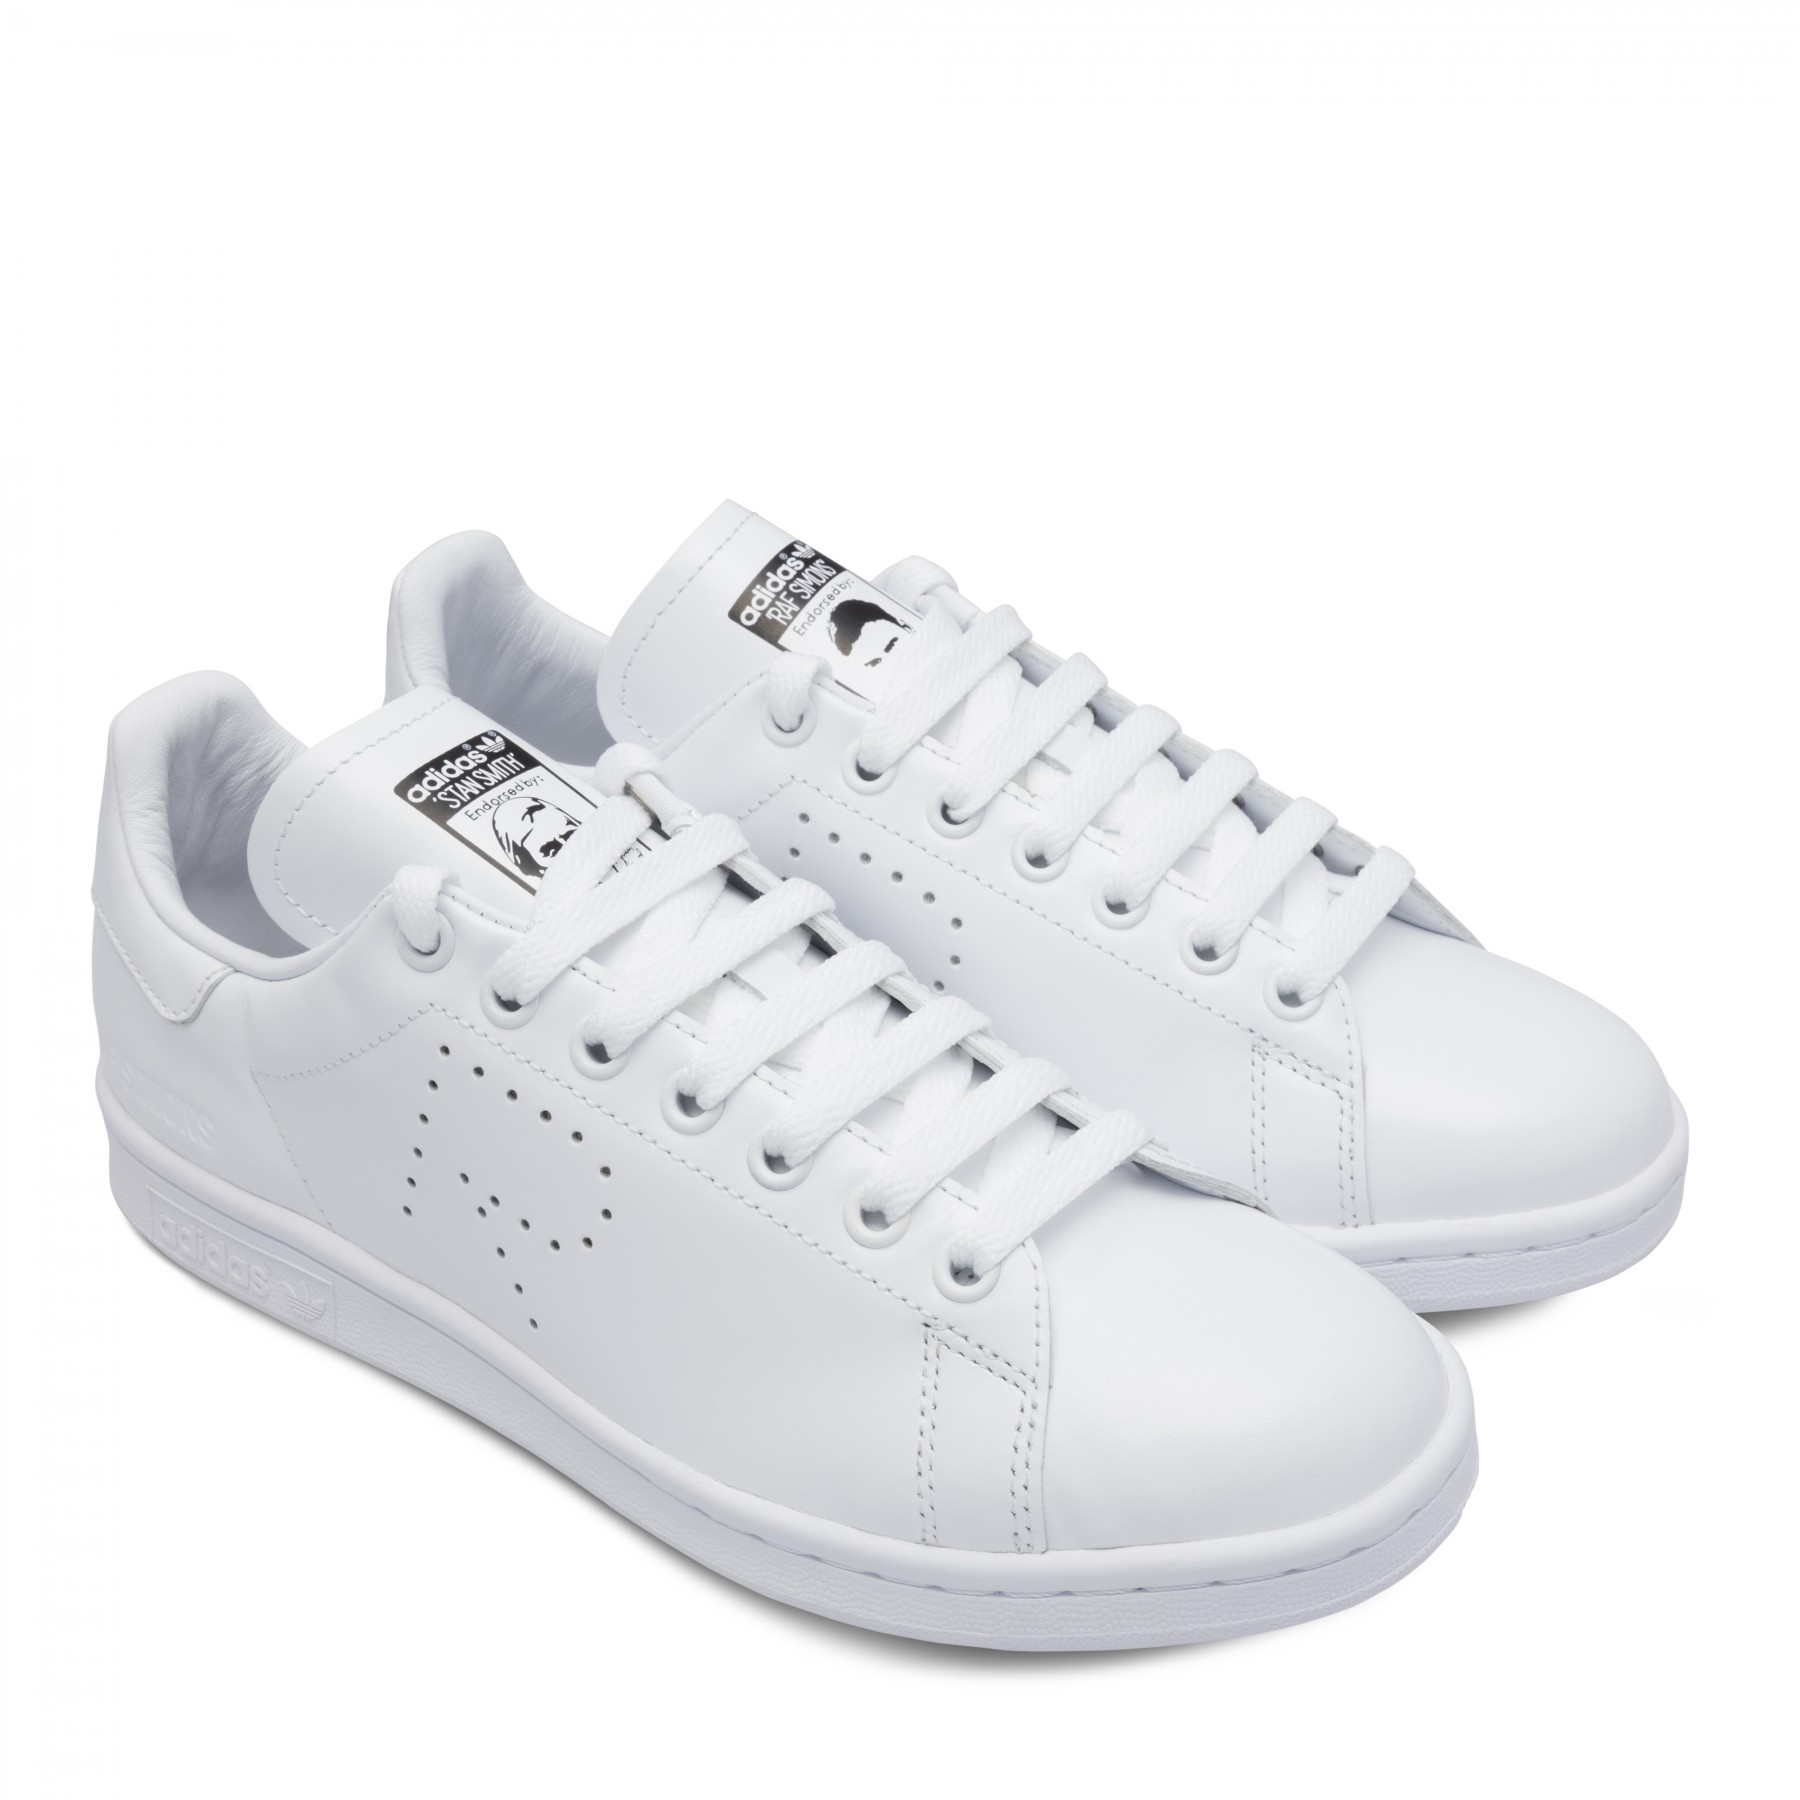 QUICK SALE ADIDAS X RAF SIMONS STAN SMITH WHITE 7.5 US 40 2/3 EU 7 UK